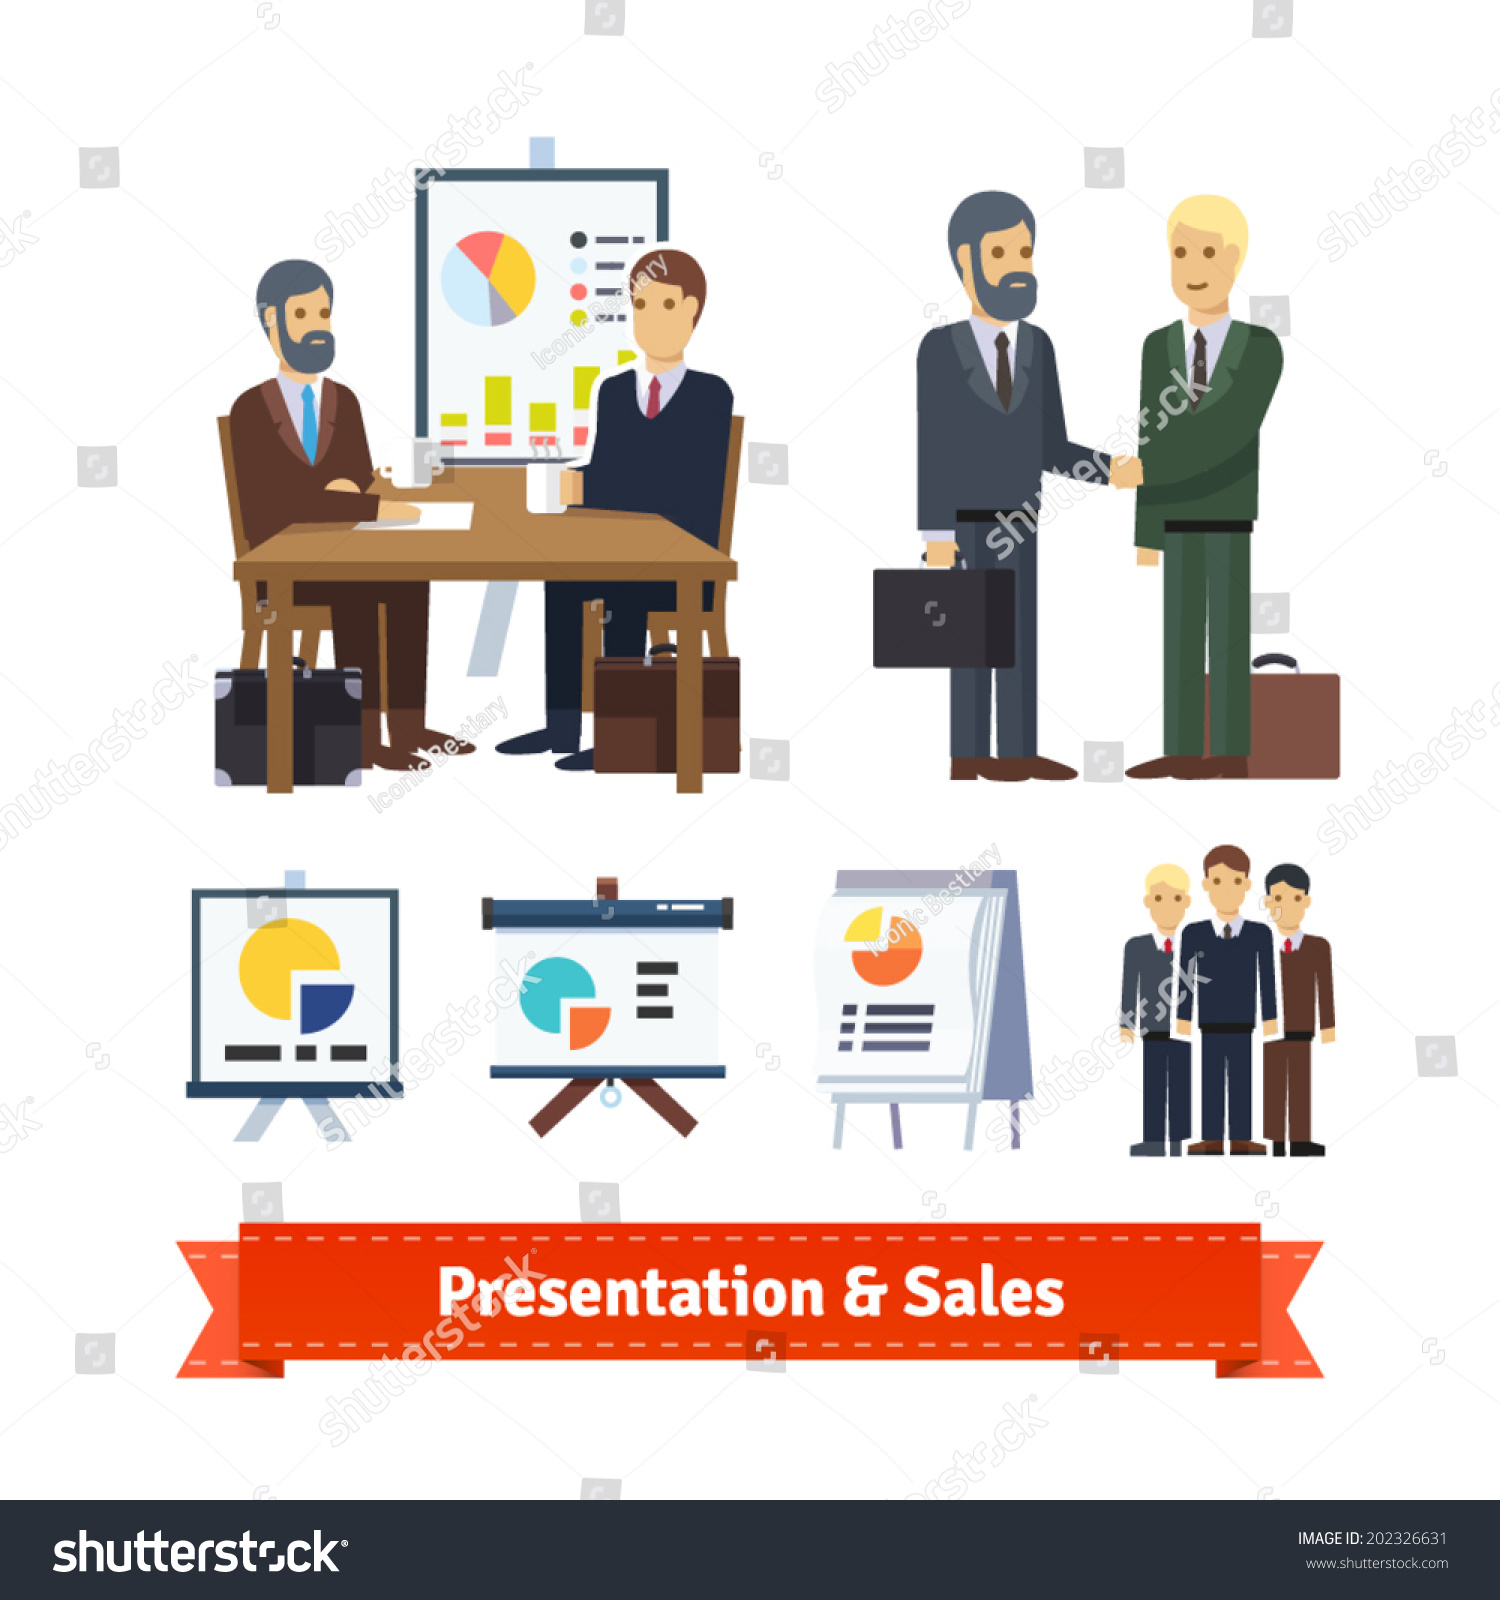 business job interview brainstorming closing stock vector business job interview brainstorming closing handshake and various charts flat icon